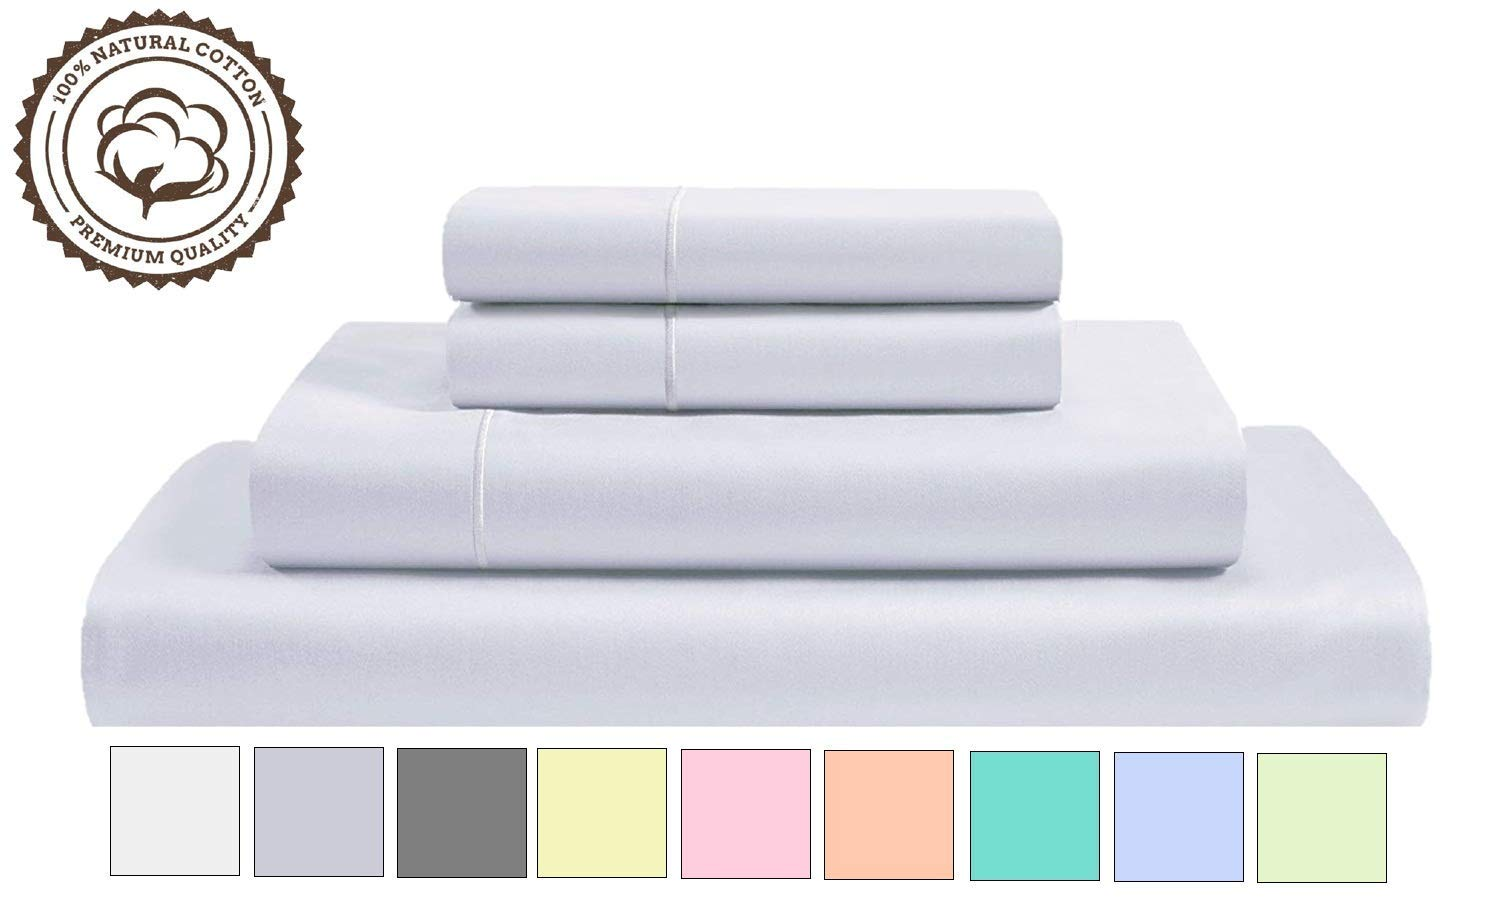 Linenwalas 800 Thread Count Cotton Sheets - High Thread Count Sheets